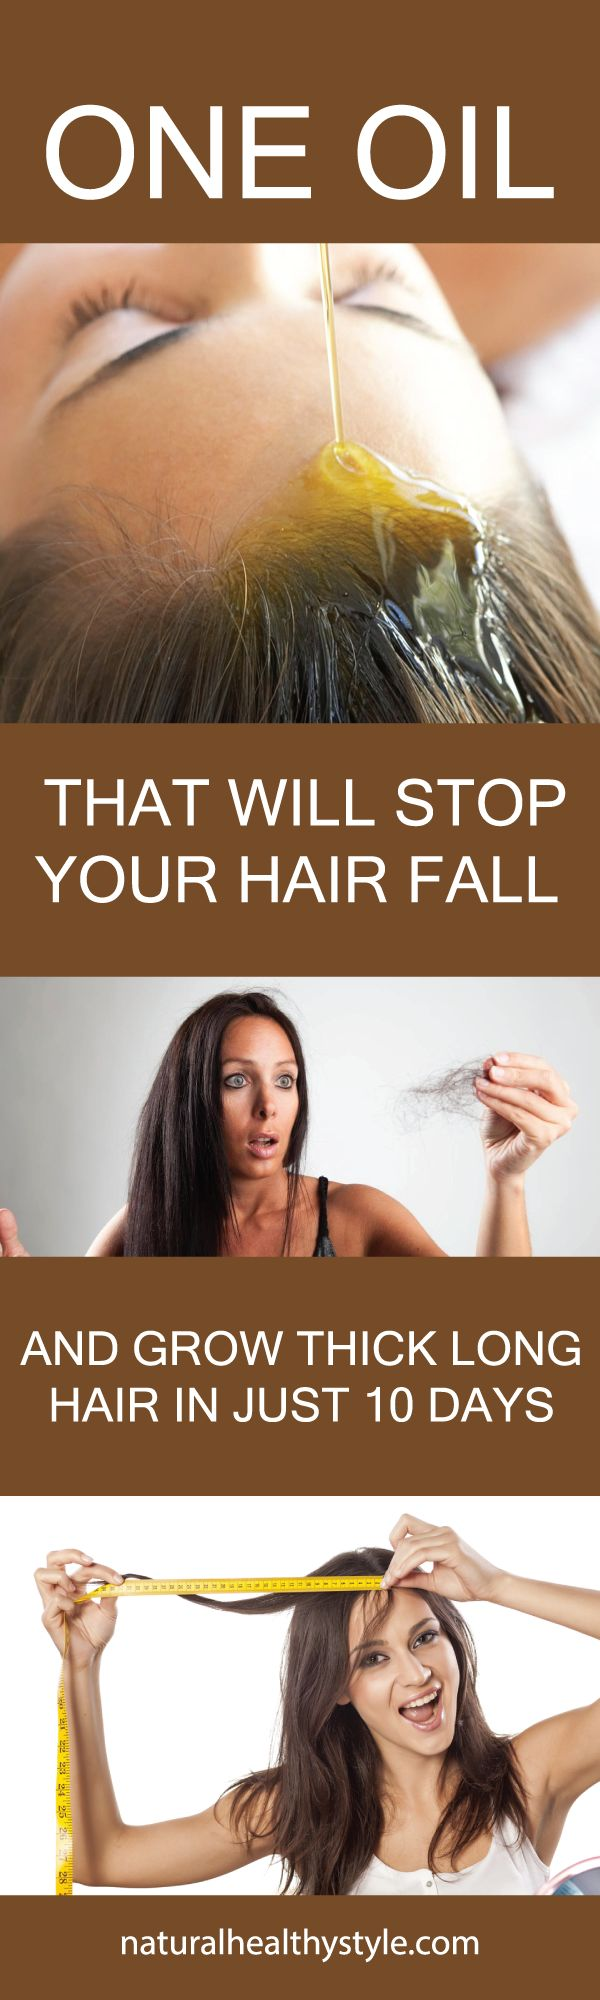 Hair loss is a common condition that affects both, men and women. However, it is usually women that try everything they can to stop their hair from falling, and make their thin hair look thick and healthy. There are various reasons for hair loss, including stress, trauma, pregnancy, excess vitamin A, lack of protein, heredity, hypothyroidism, anemia, #hairlosspregnancy #hairlosstips